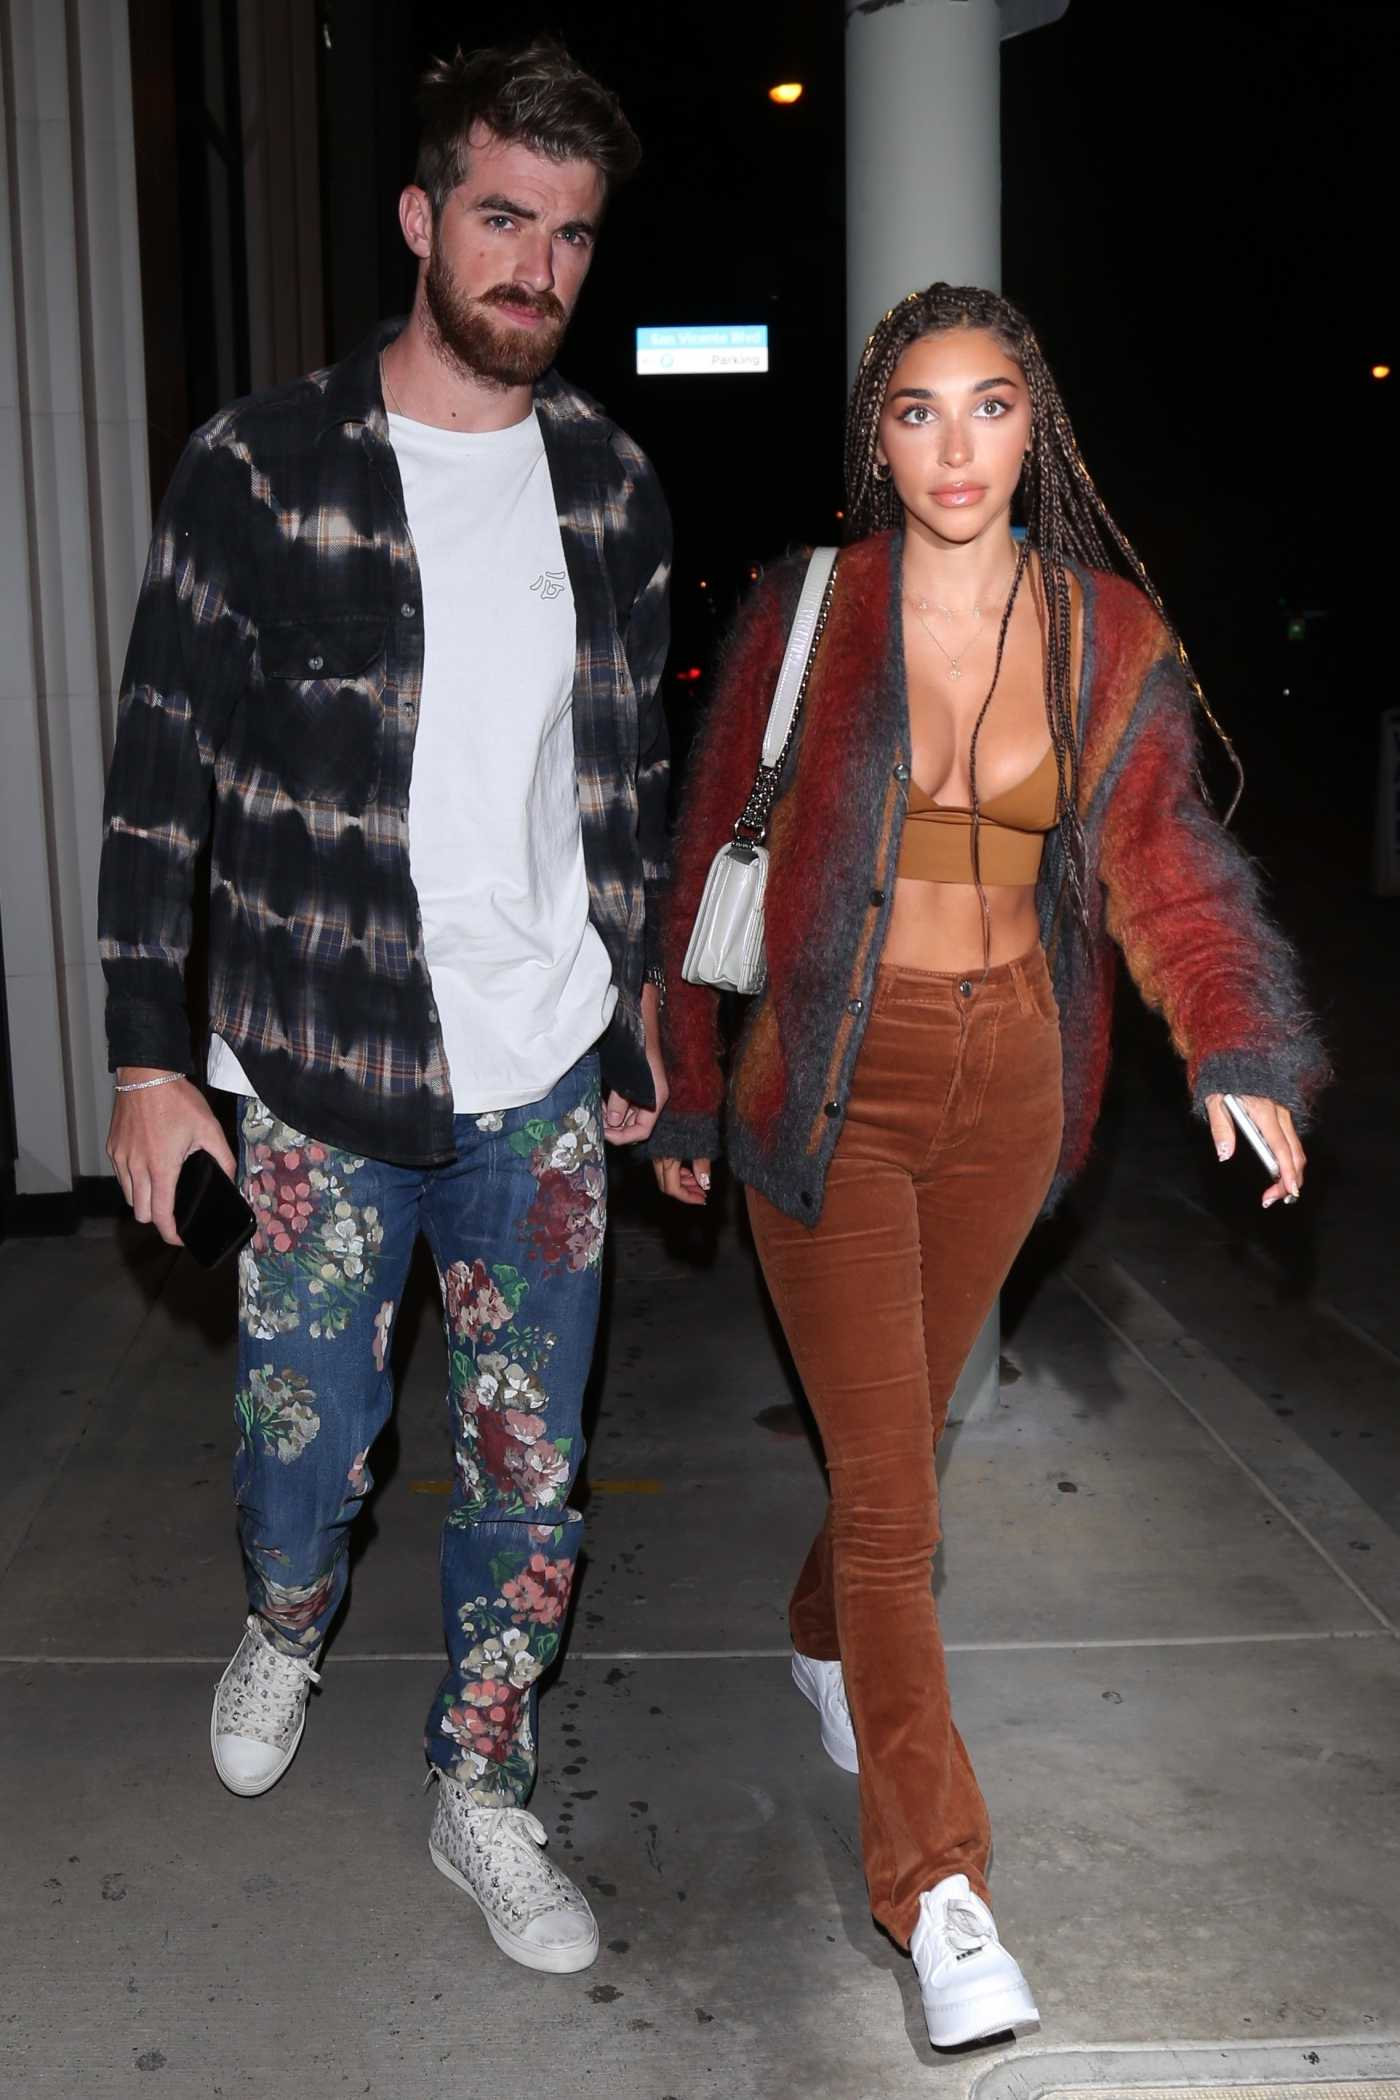 Chantel Jeffries in a Tan Bra Leaves a Catch Restaurant in West Hollywood 06/13/2020